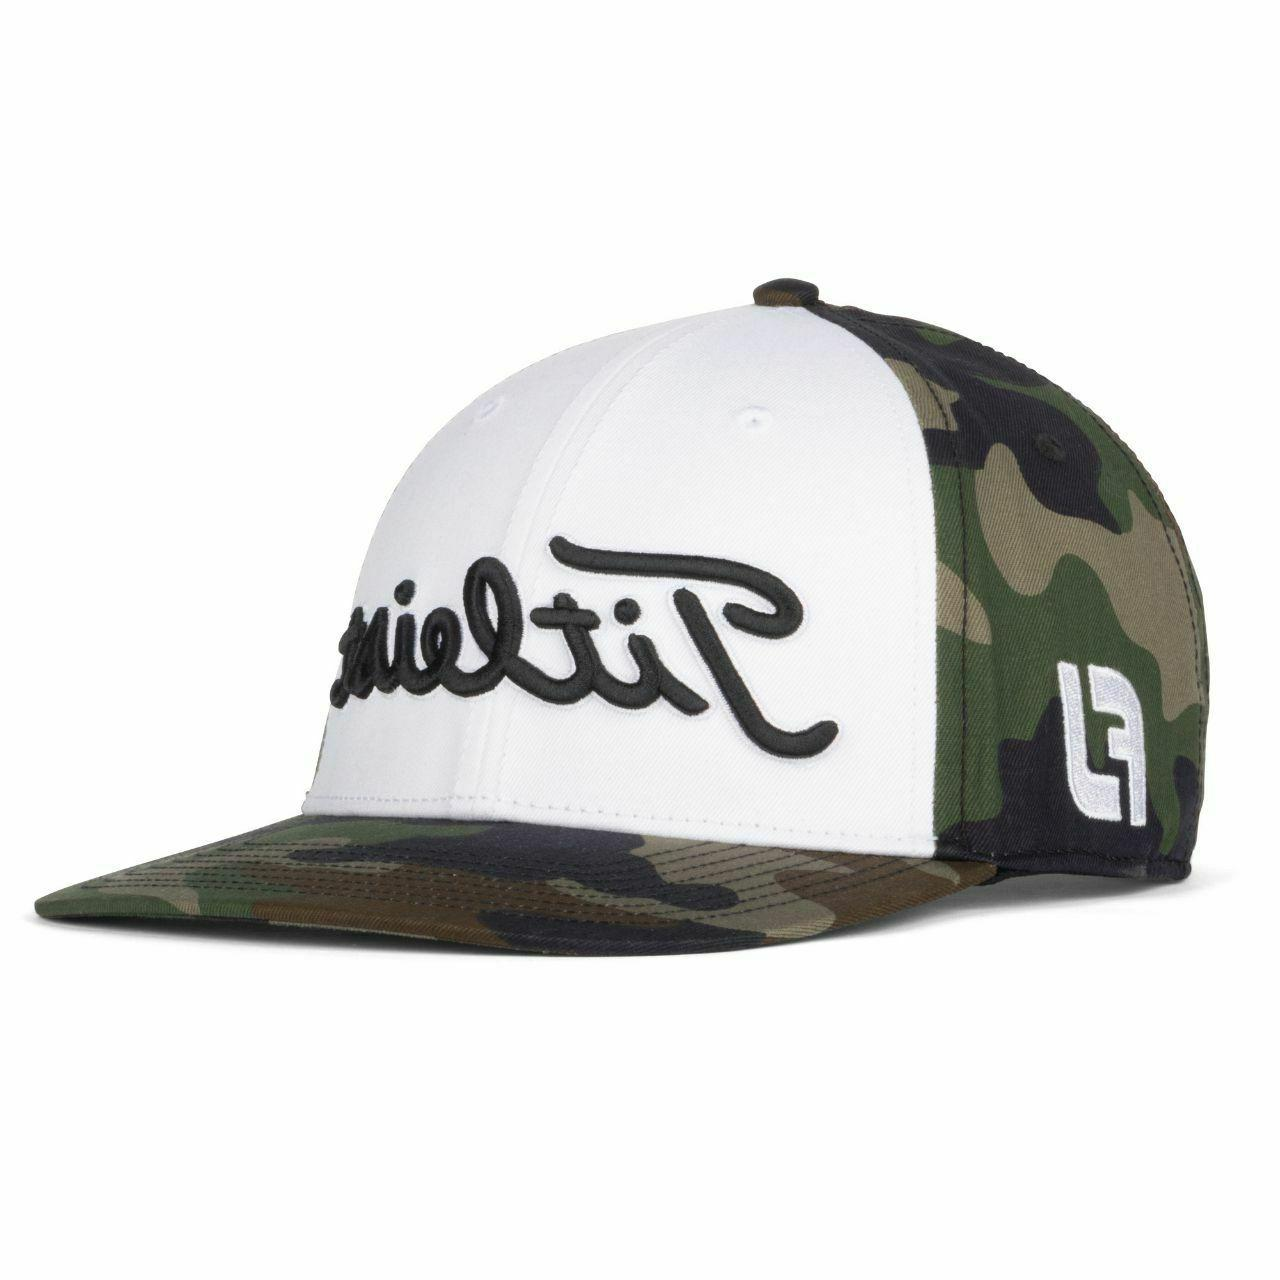 Titleist Golf Camo Curve Hat